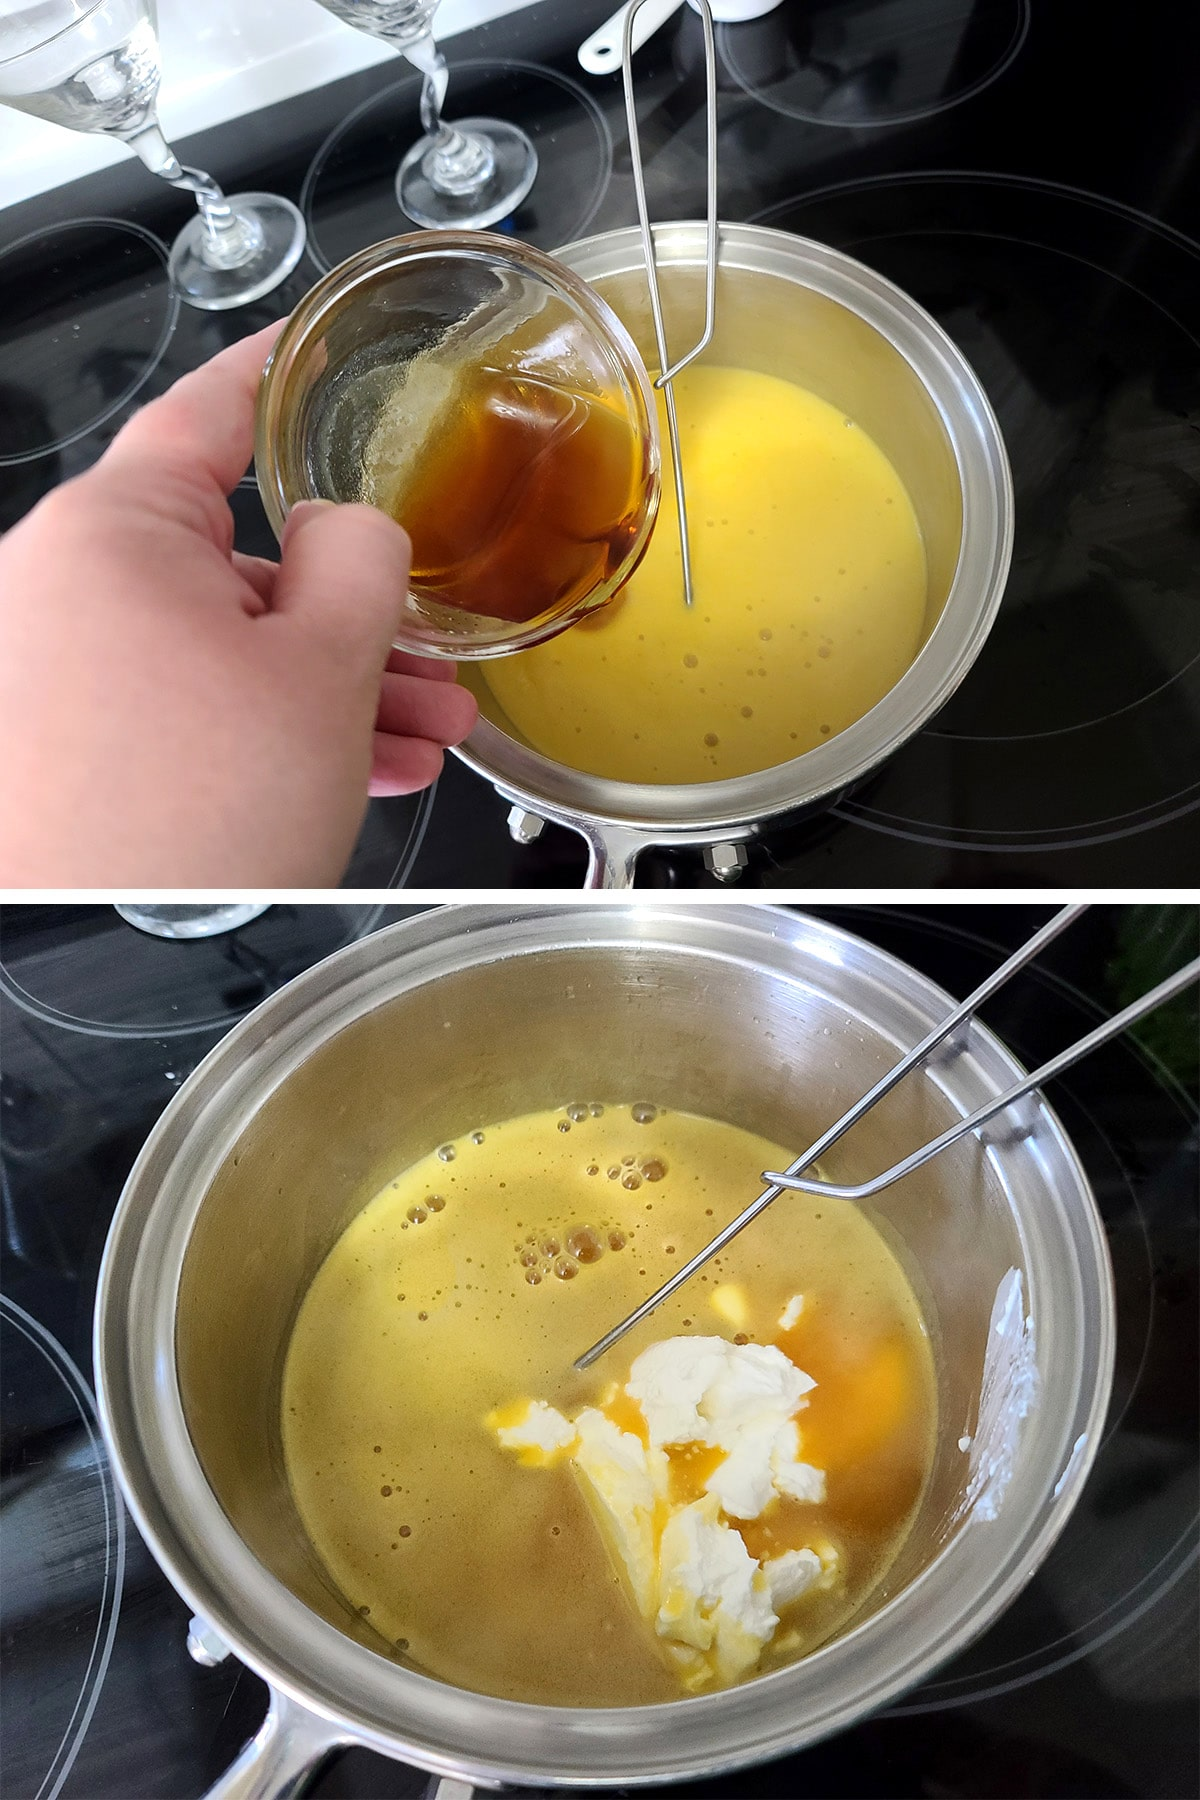 Rum and sour cream being added to the pot of mango mixture.